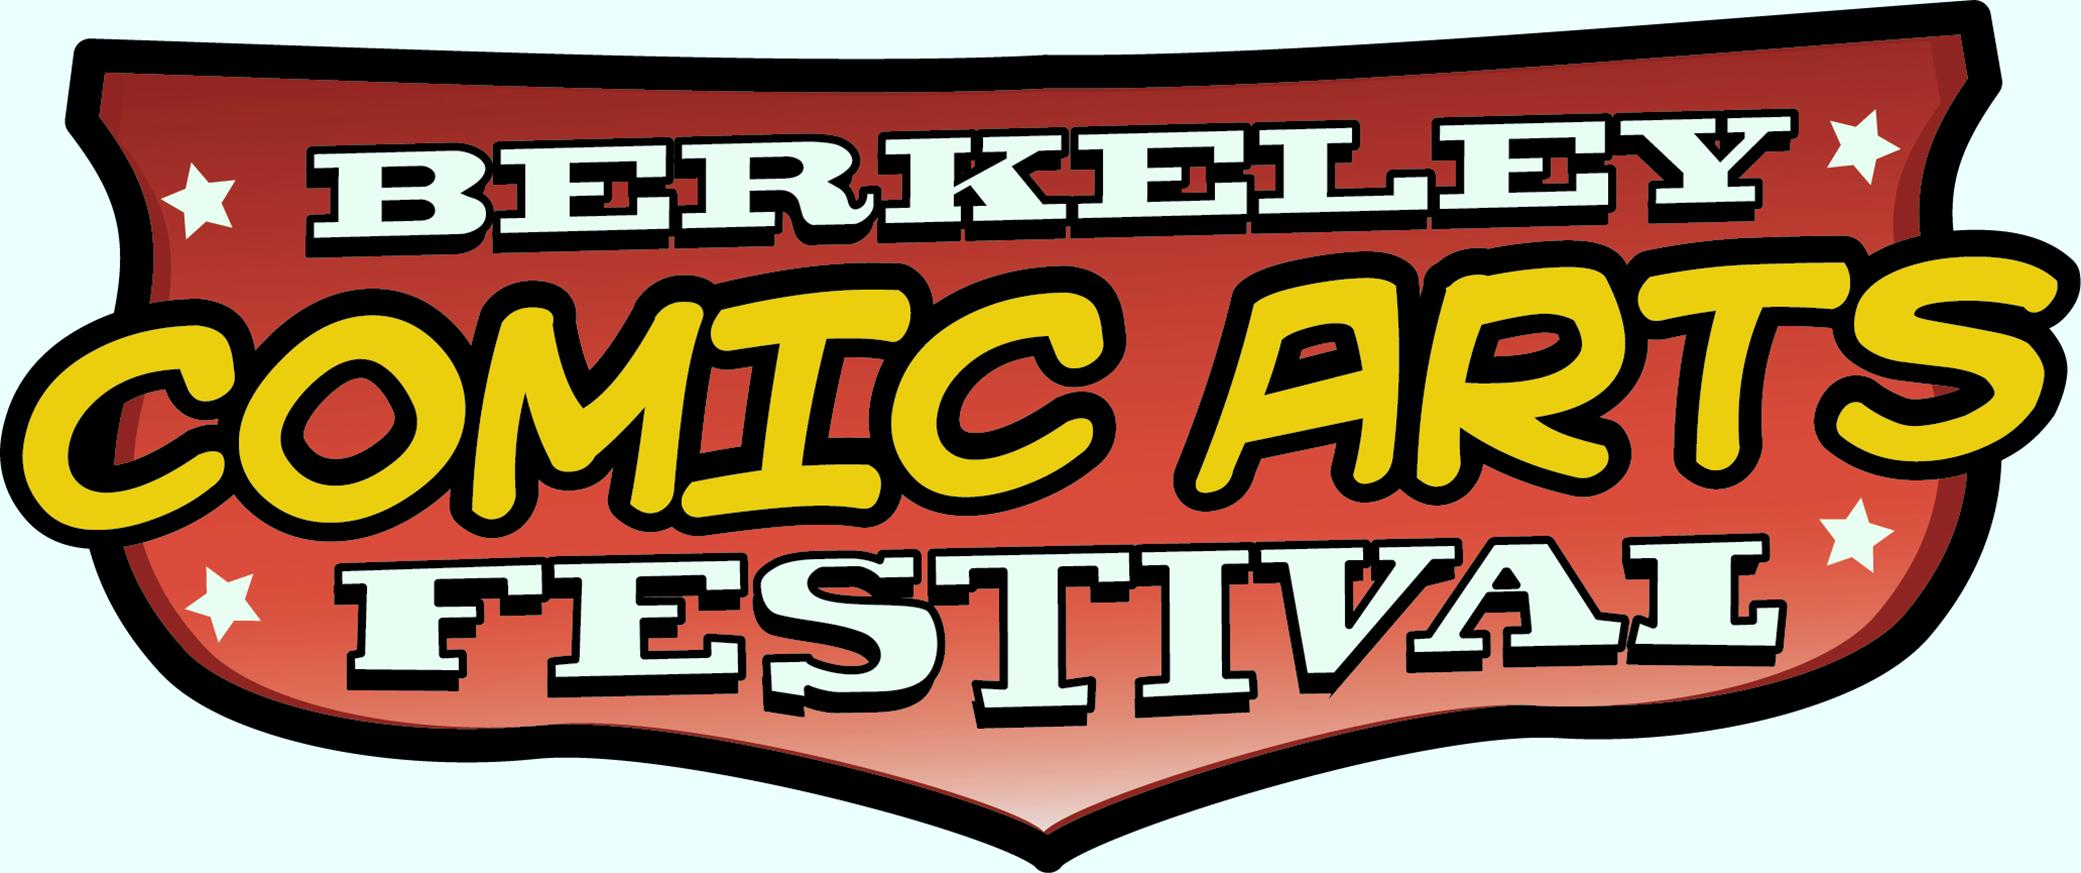 Berkeley Comic Arts Festival